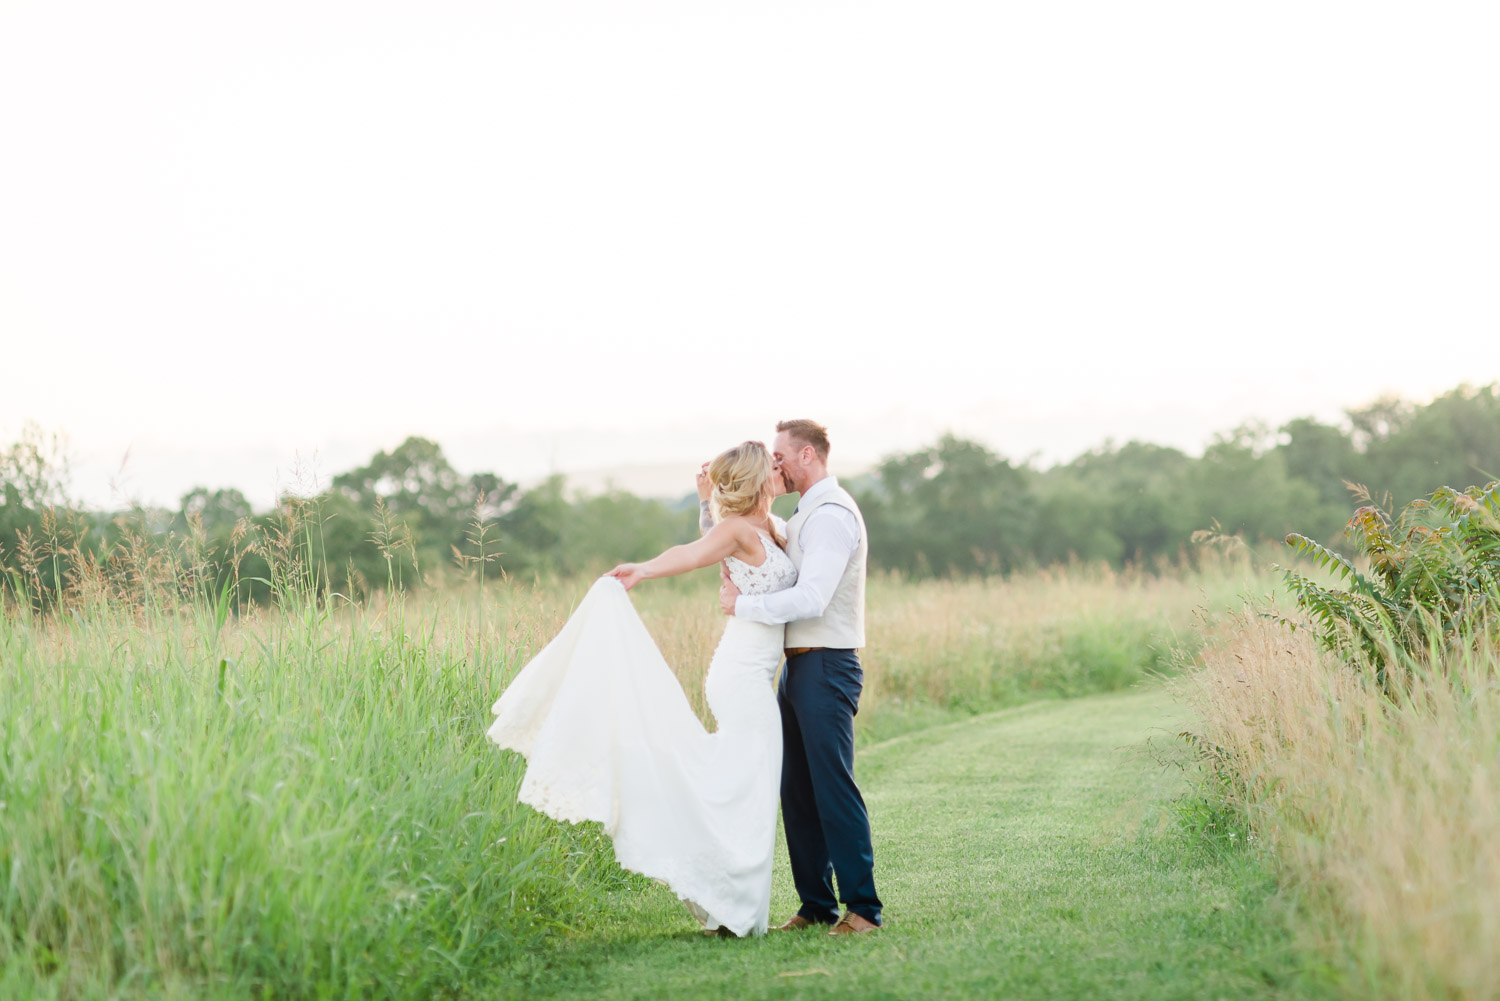 bride embracing groom in white wedding dress in open field at sunset